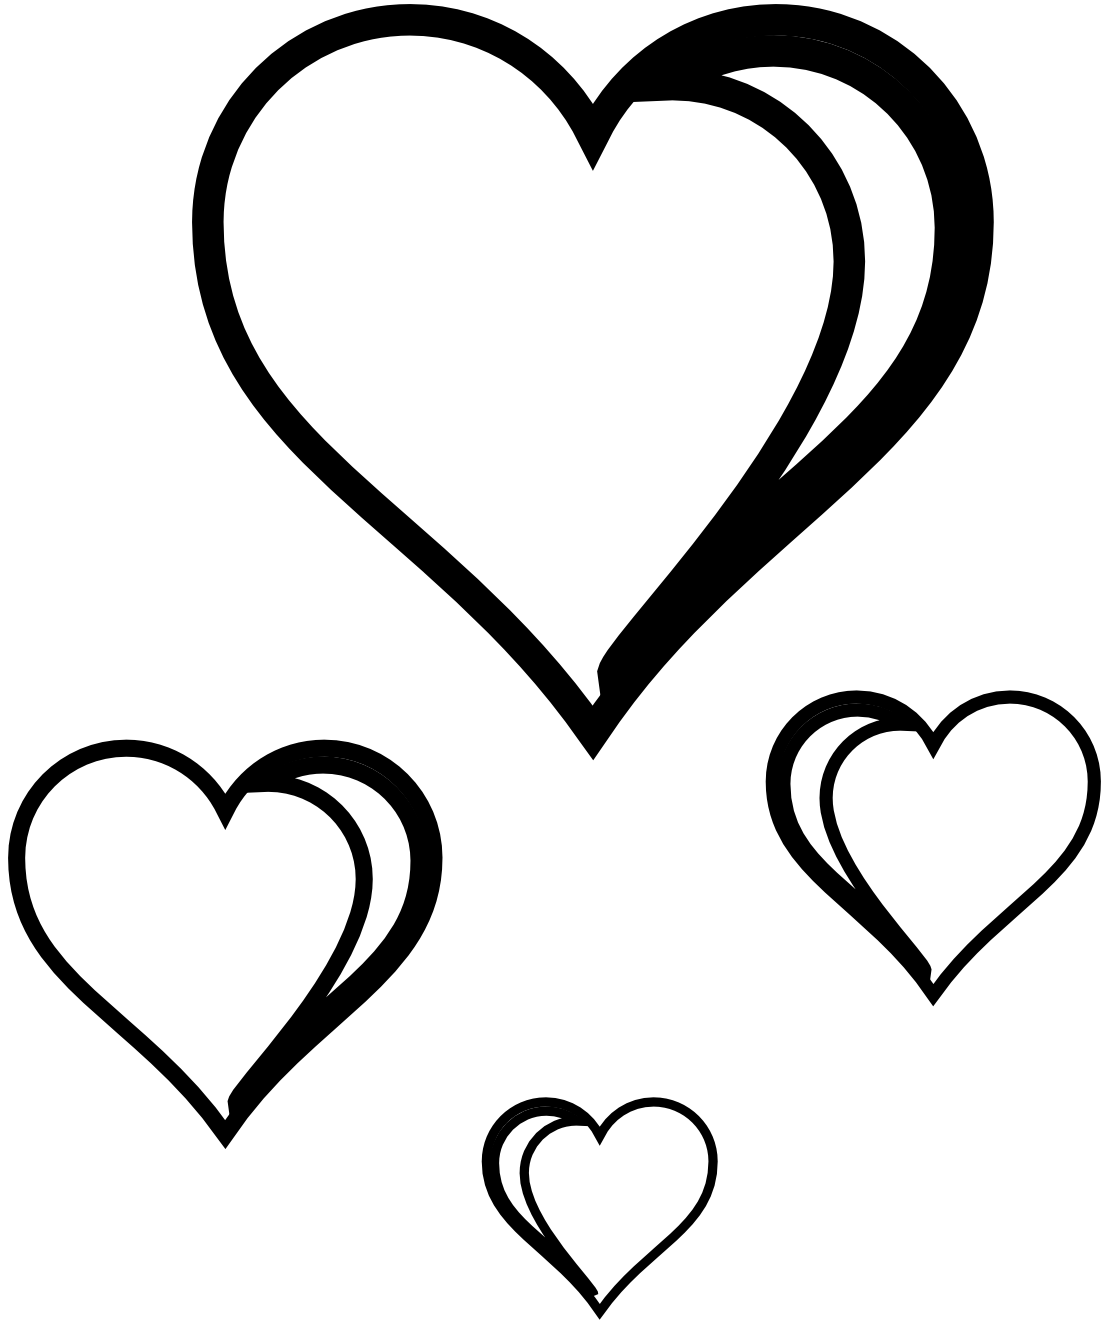 Heart Clip Art Black And White | Clipart Panda - Free Clipart Images